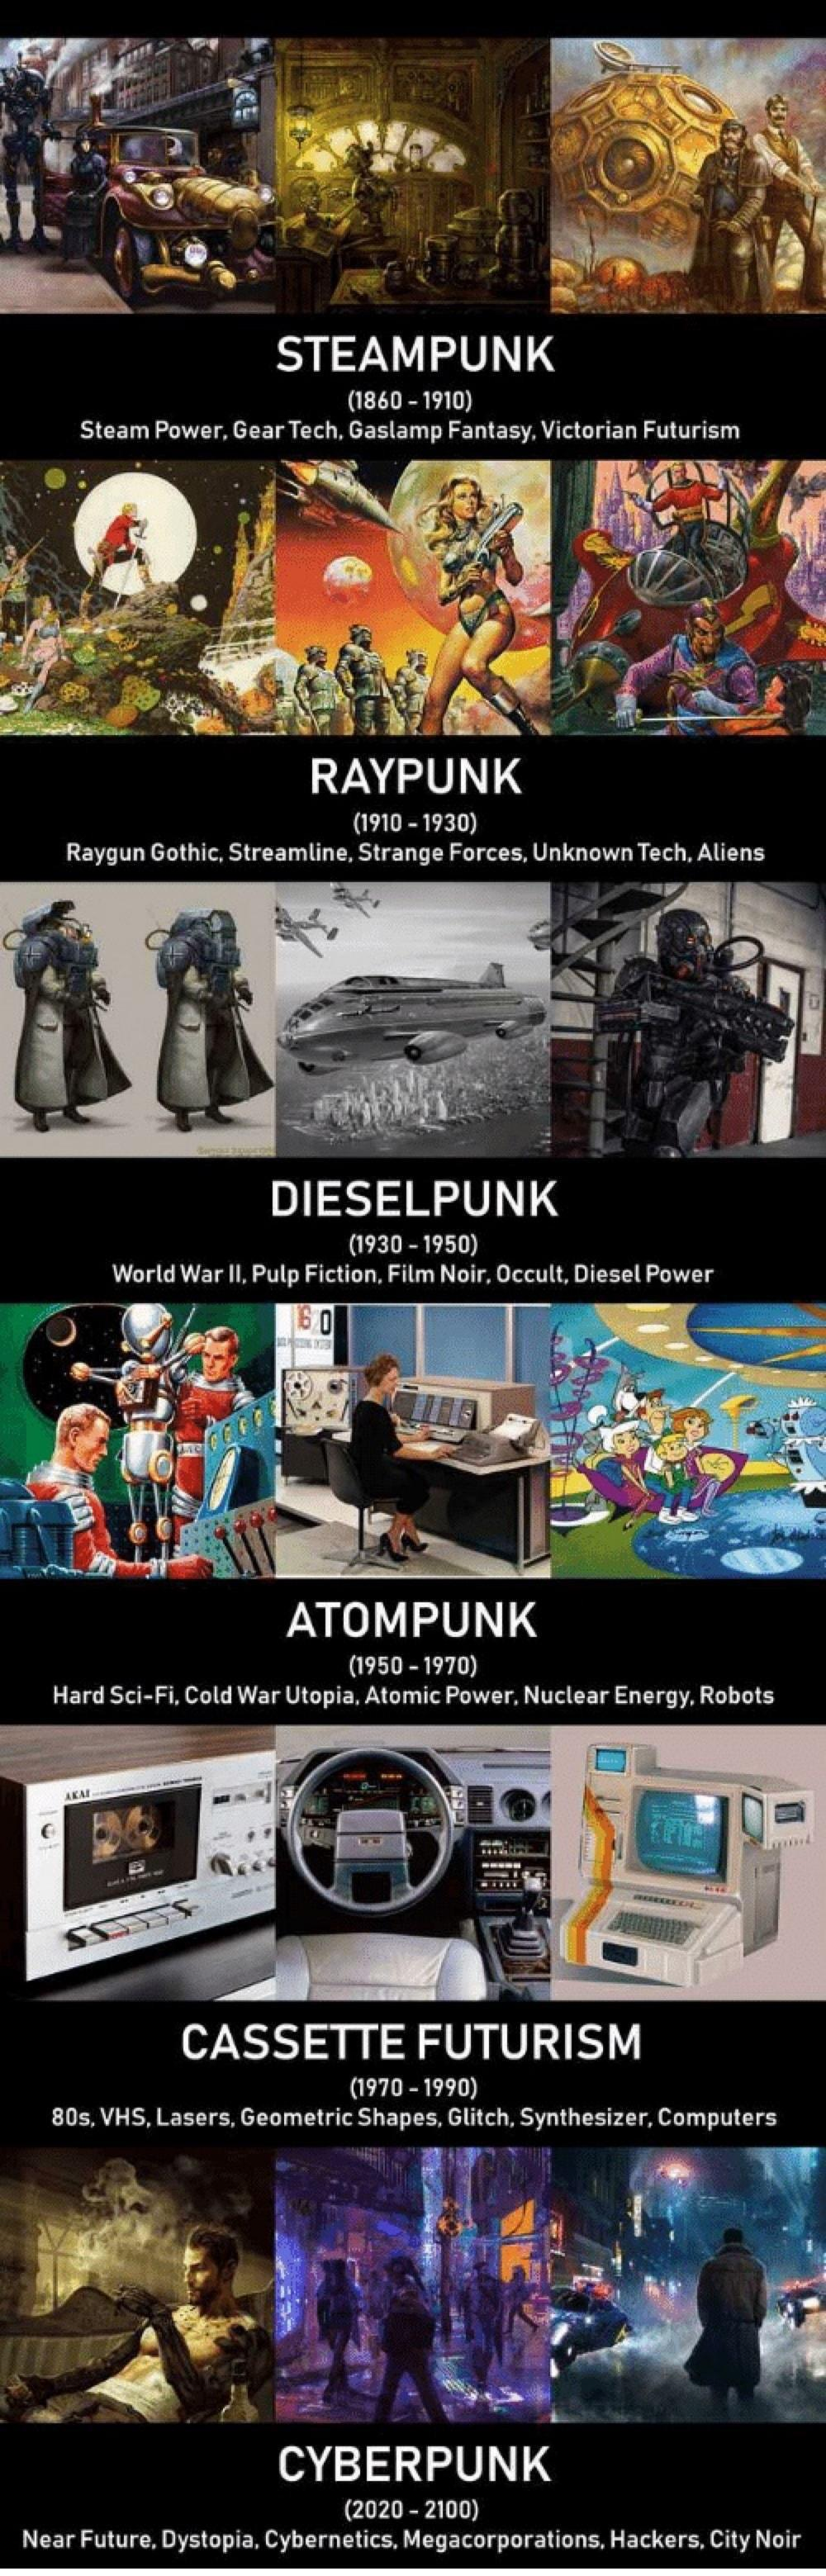 A guide on certain types of futurism in fiction